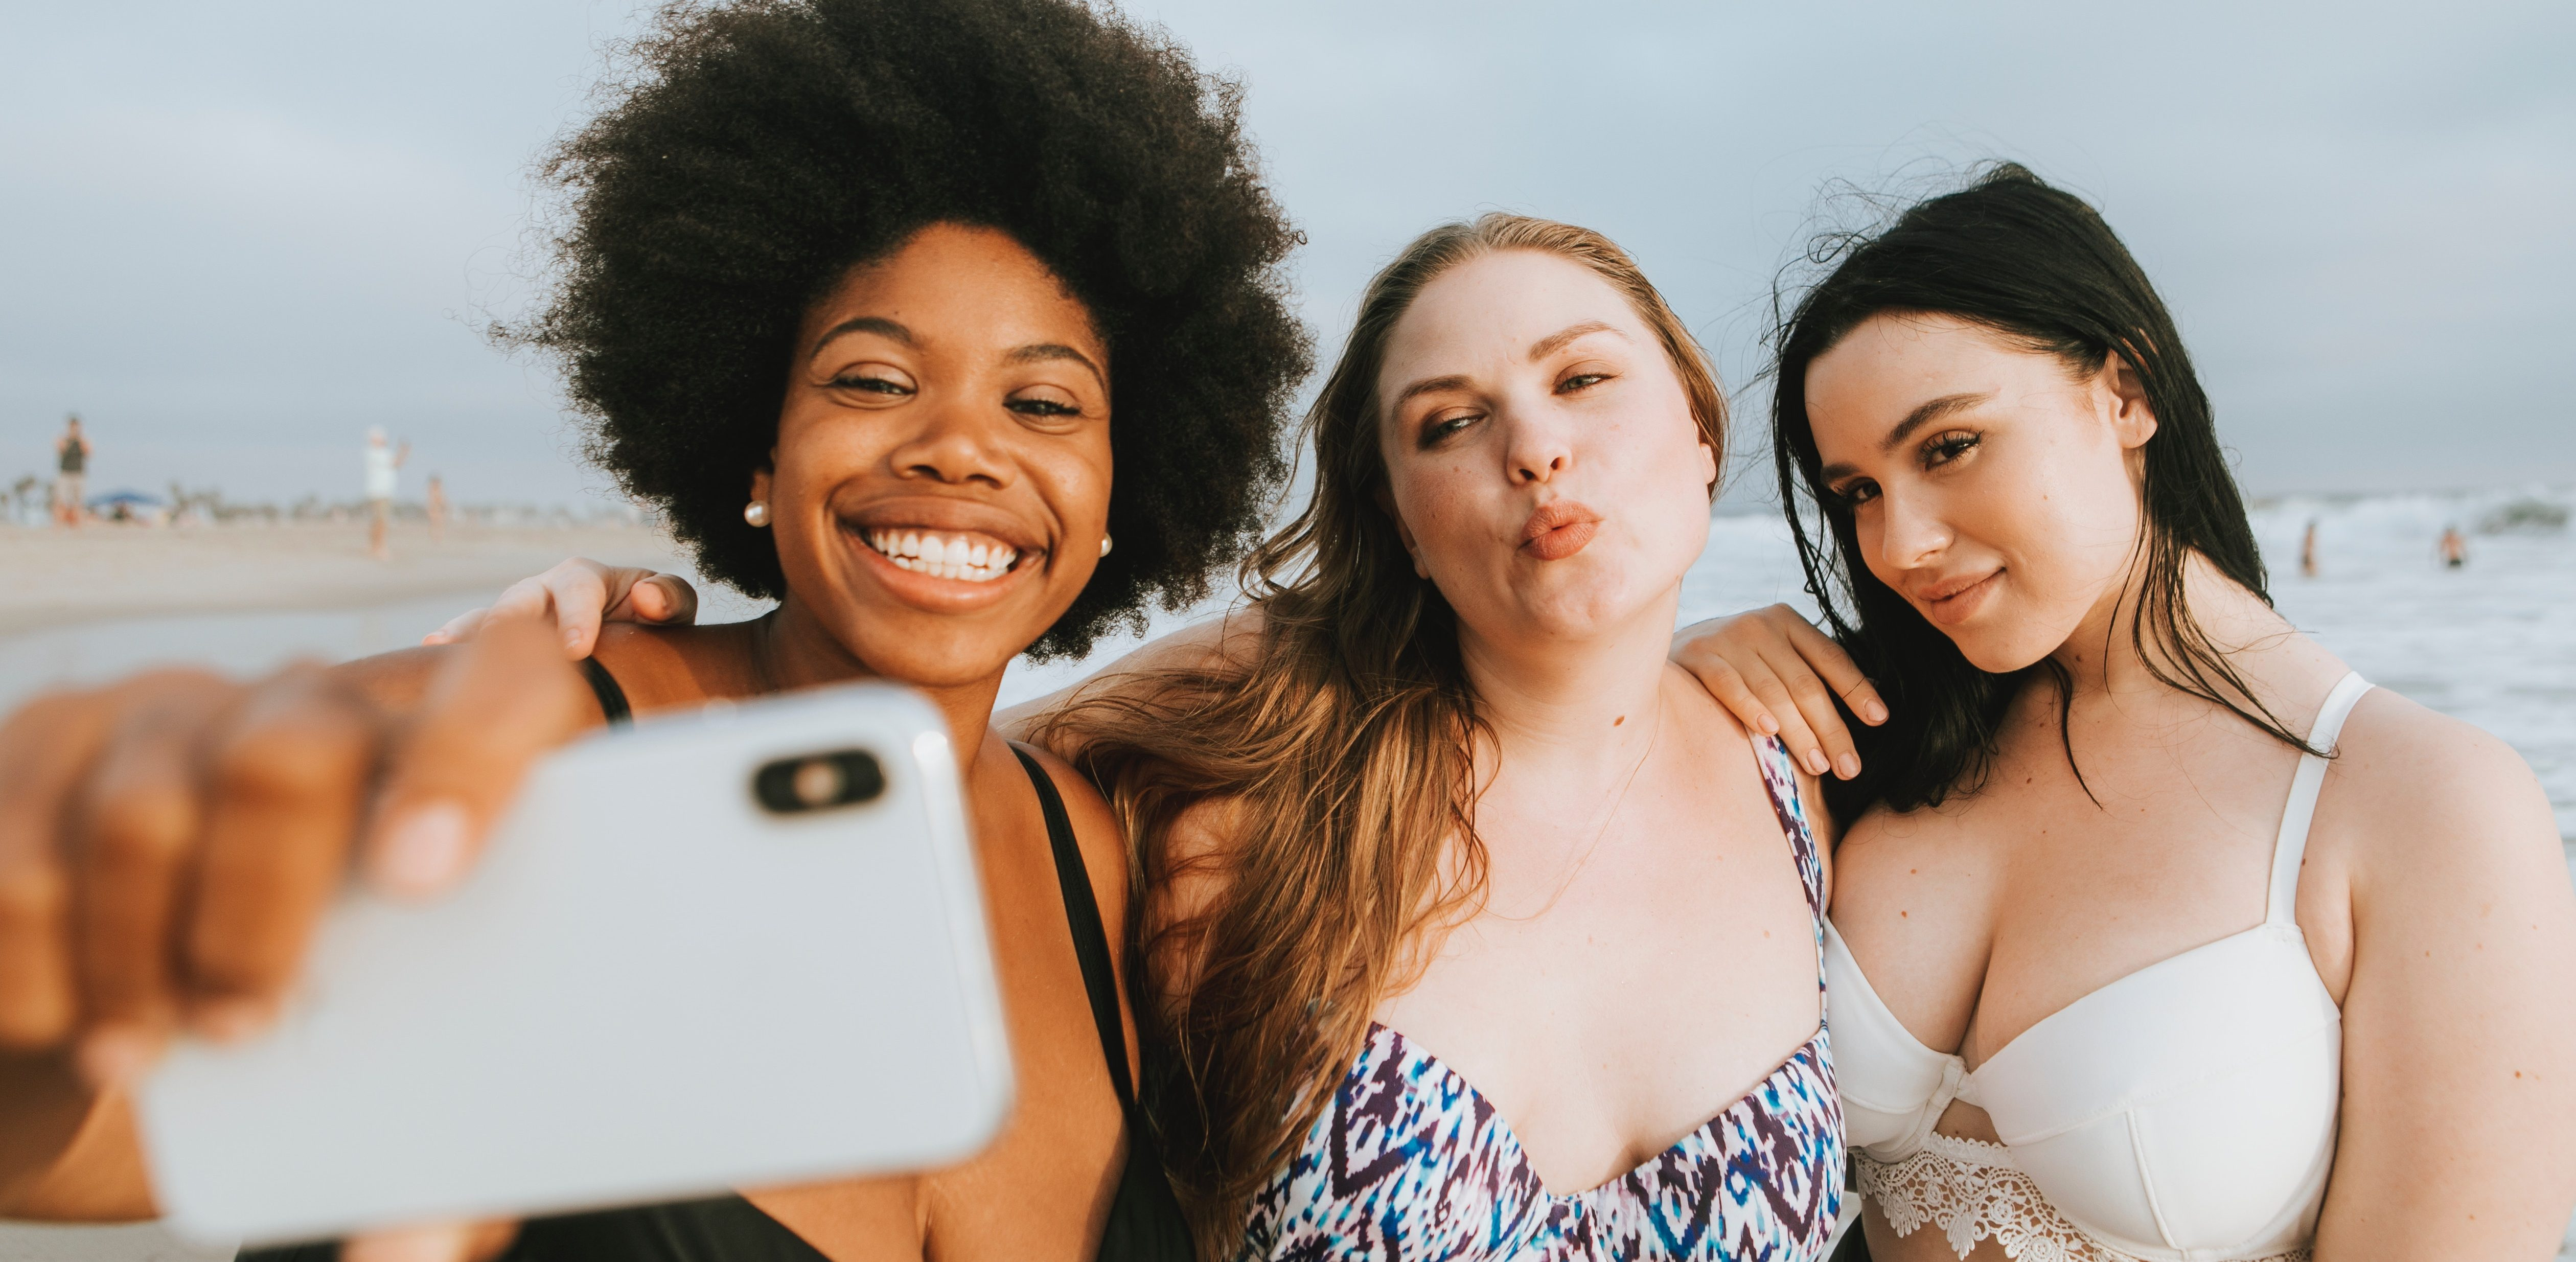 3 Awesome Brands That Are All About Body Positivity